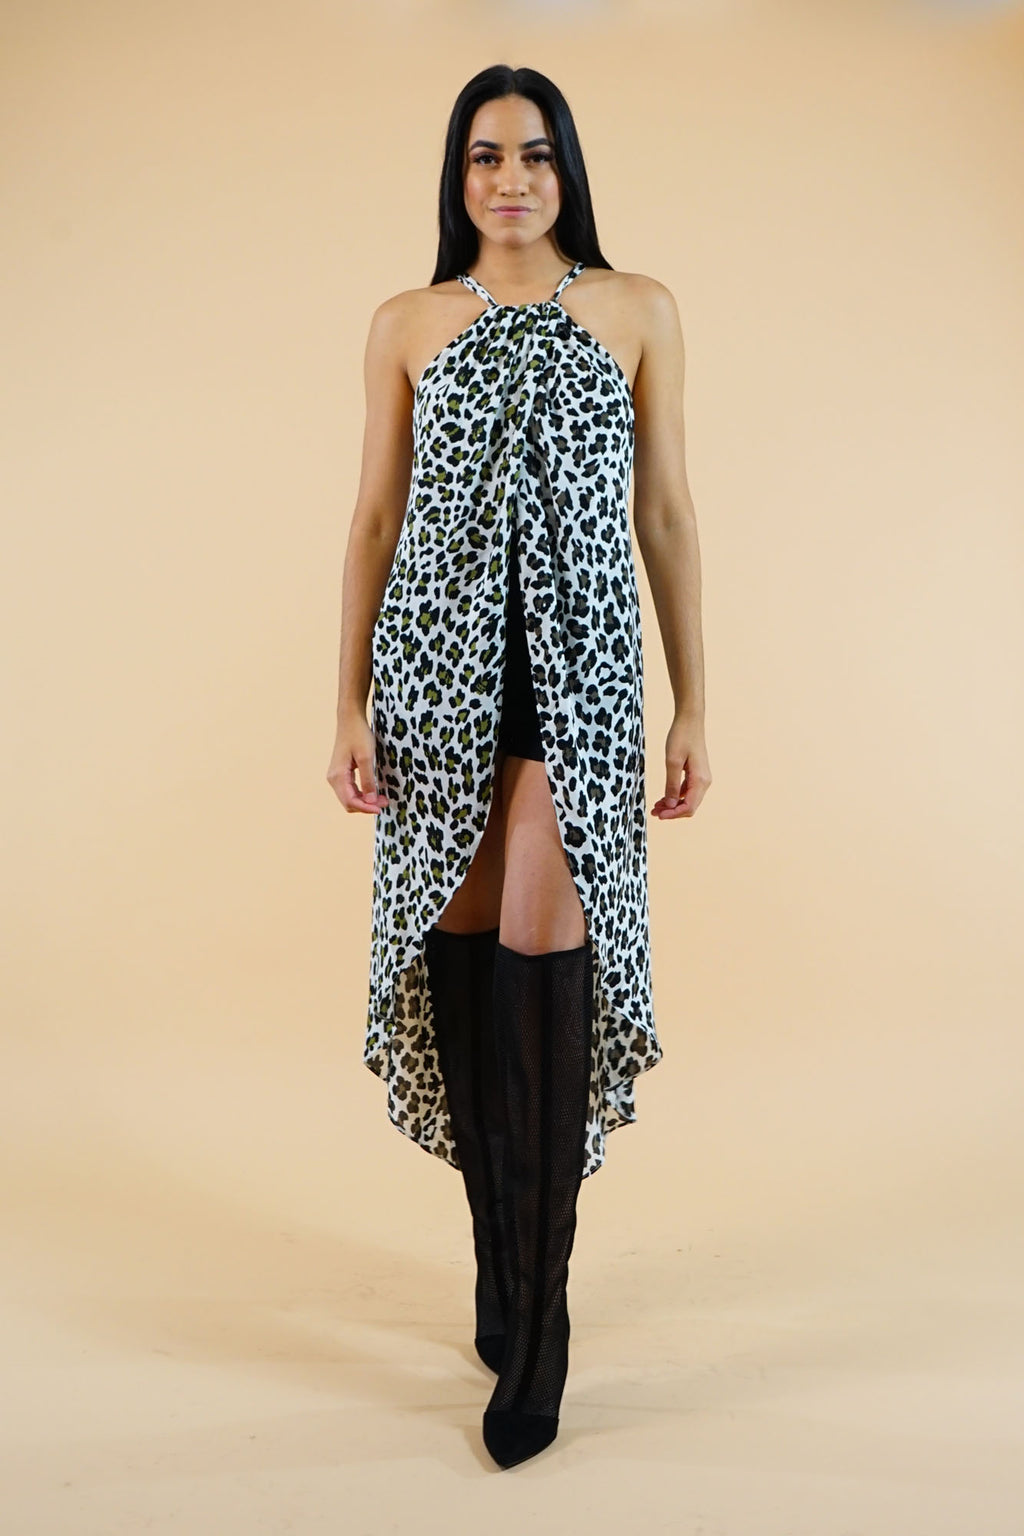 WINTER COLLECTION Cheetah Print peacock tail Long Top